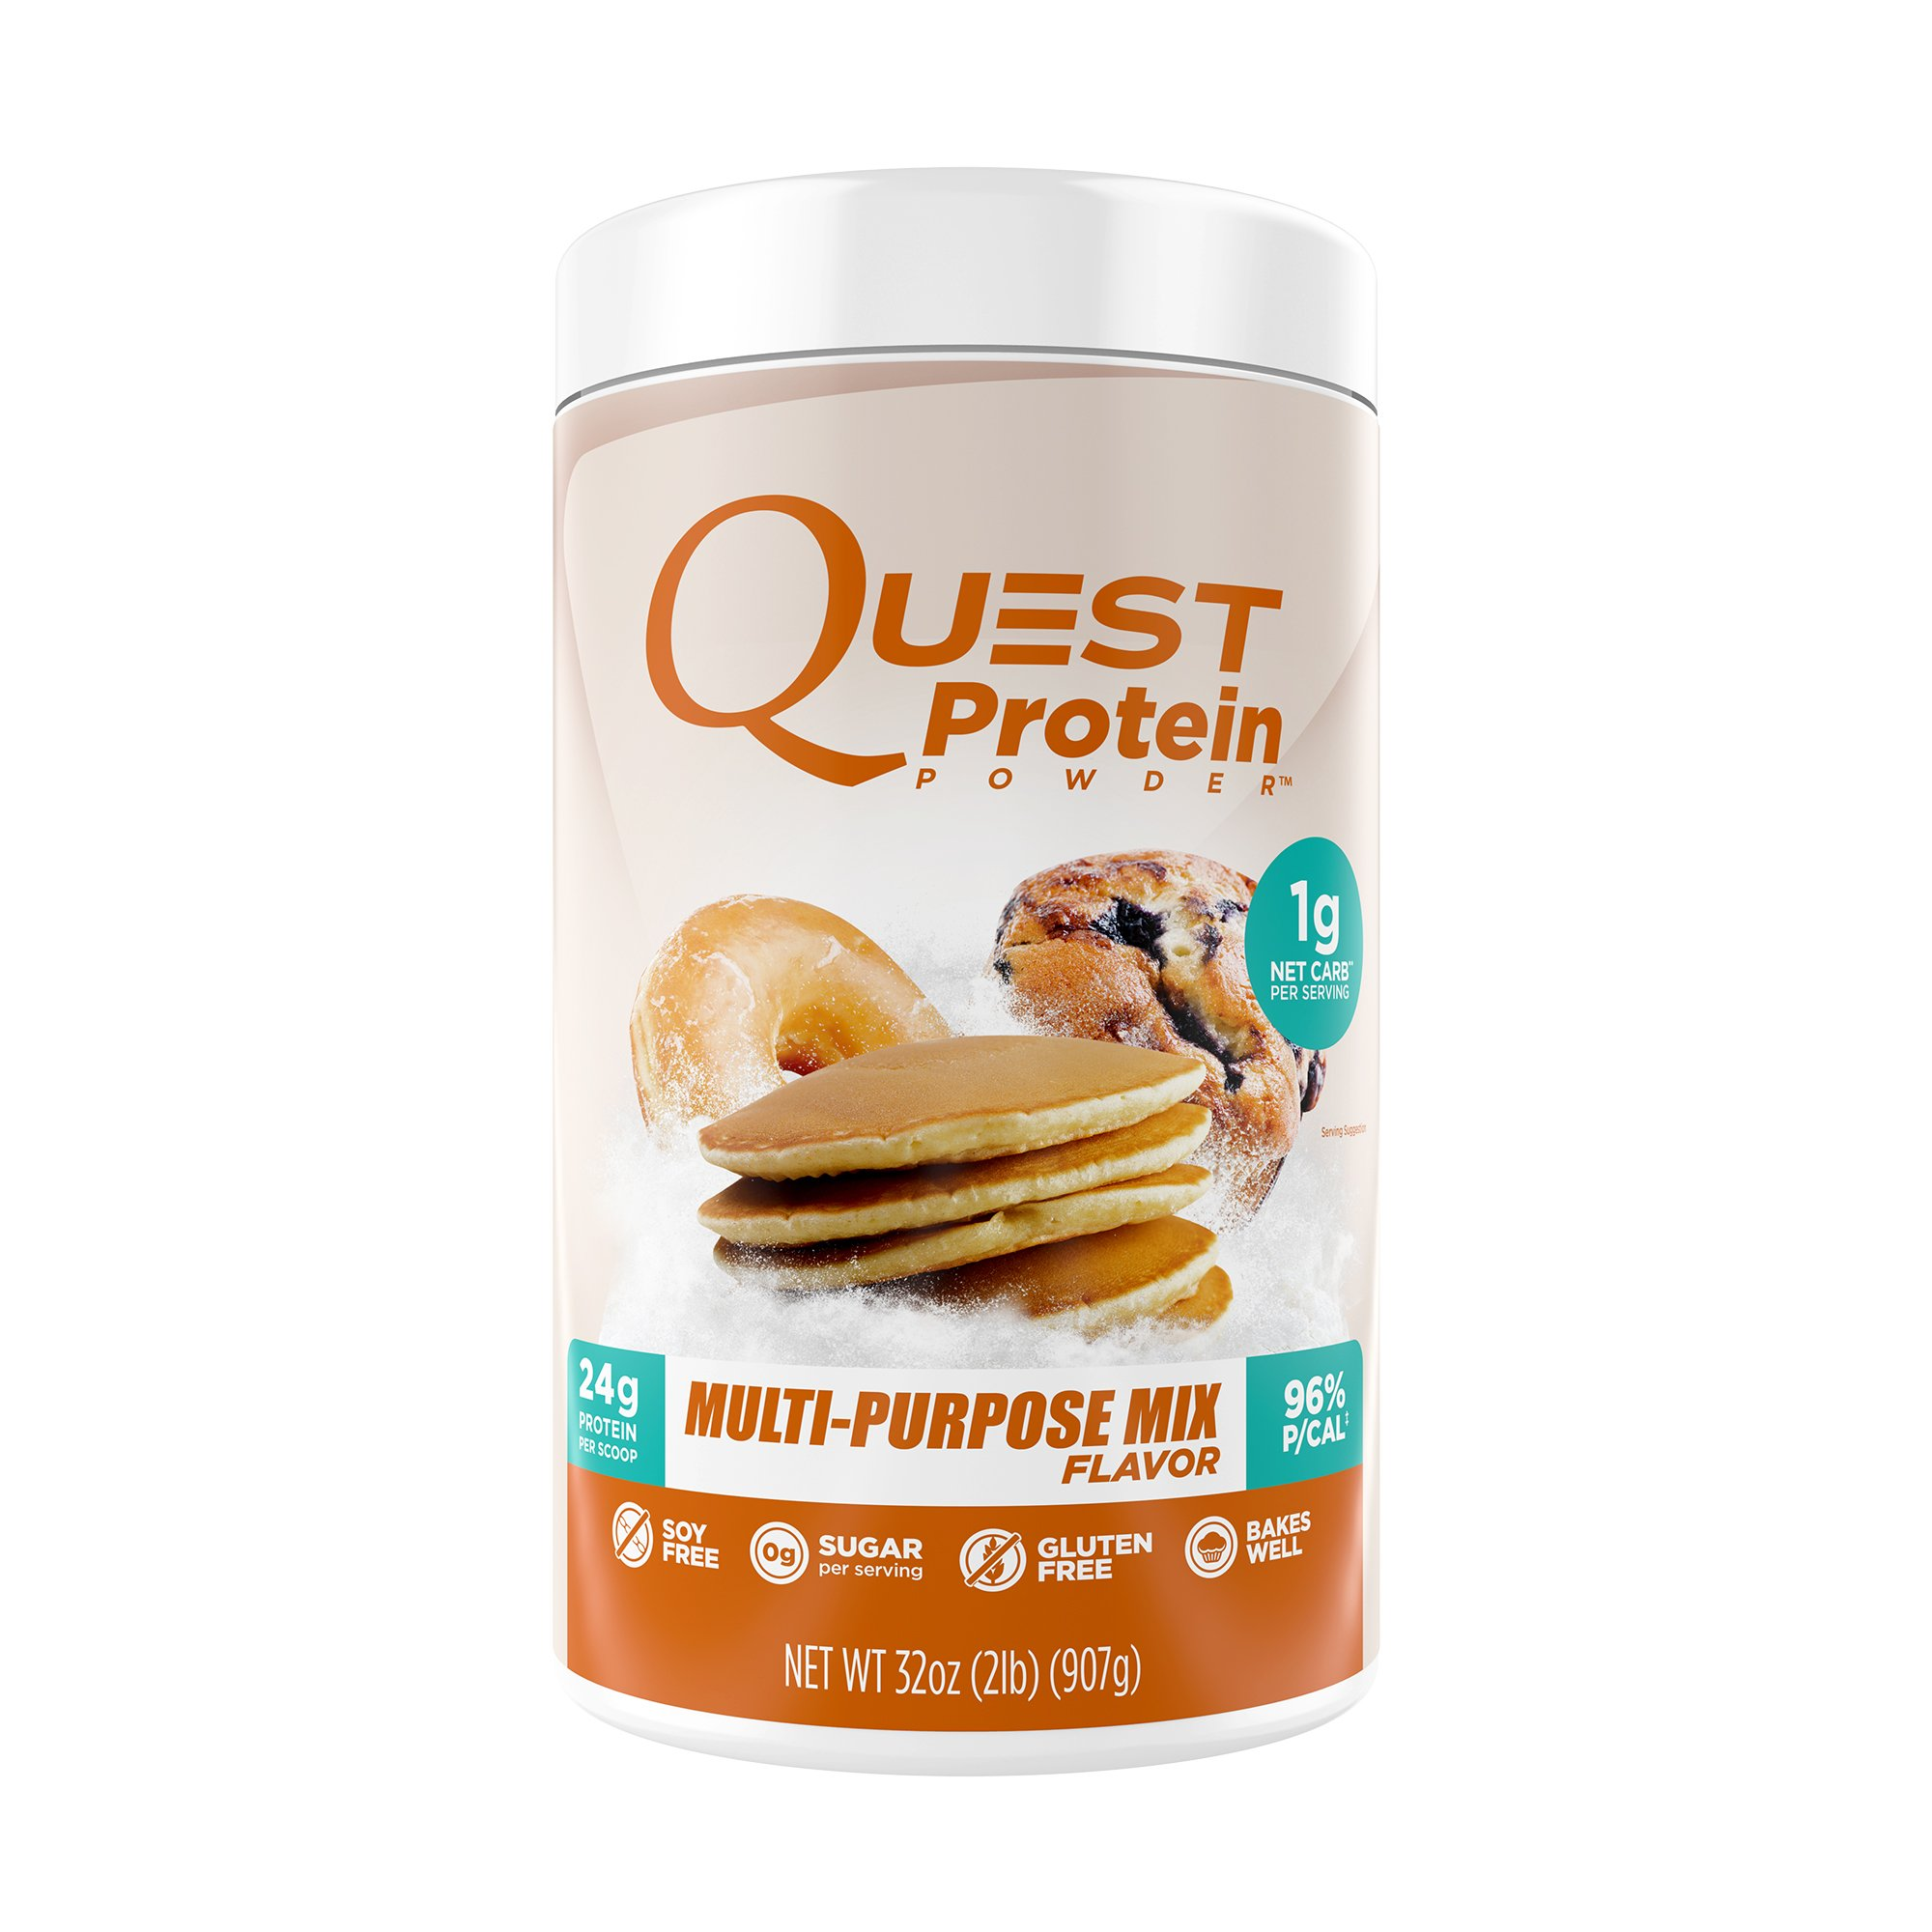 Quest Nutrition Protein Powder, Multi-Purpose Mix, 24g Protein, 1g Net Carbs, 96% P/Cals, 2lb Tub, High Protein, Low Carb, Gluten Free, Soy Free, Packaging May Vary